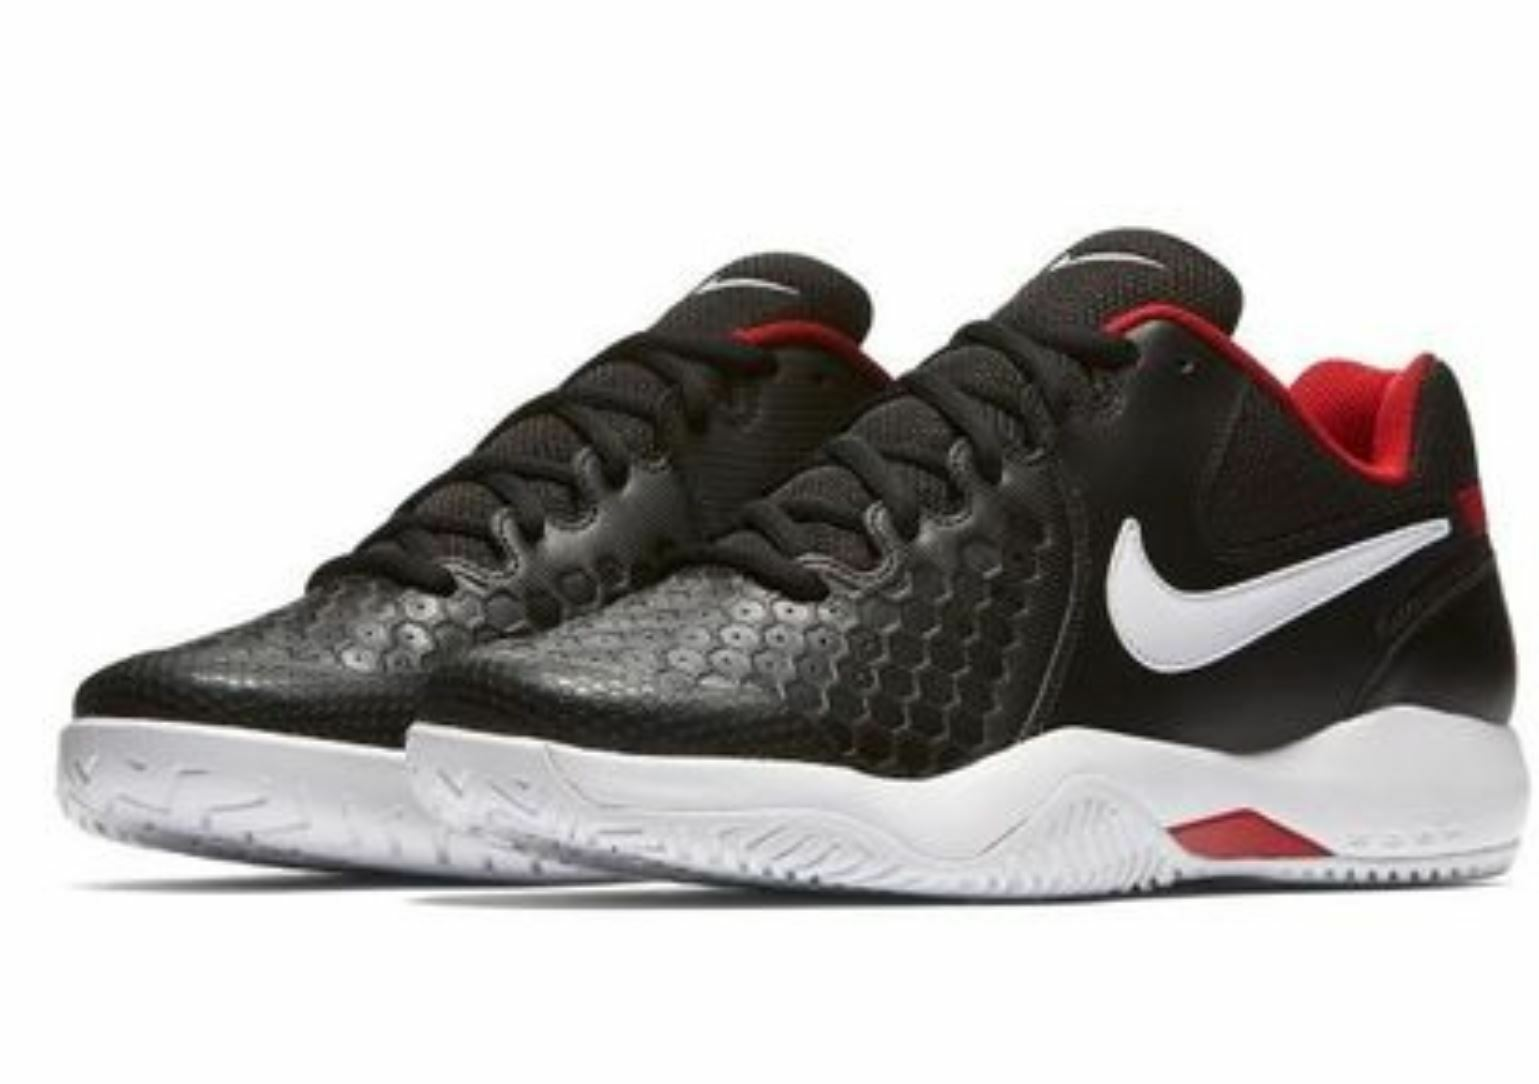 Nike 918194-001 NikeCourt Air Zoom Resistance Men's Tennis Shoe